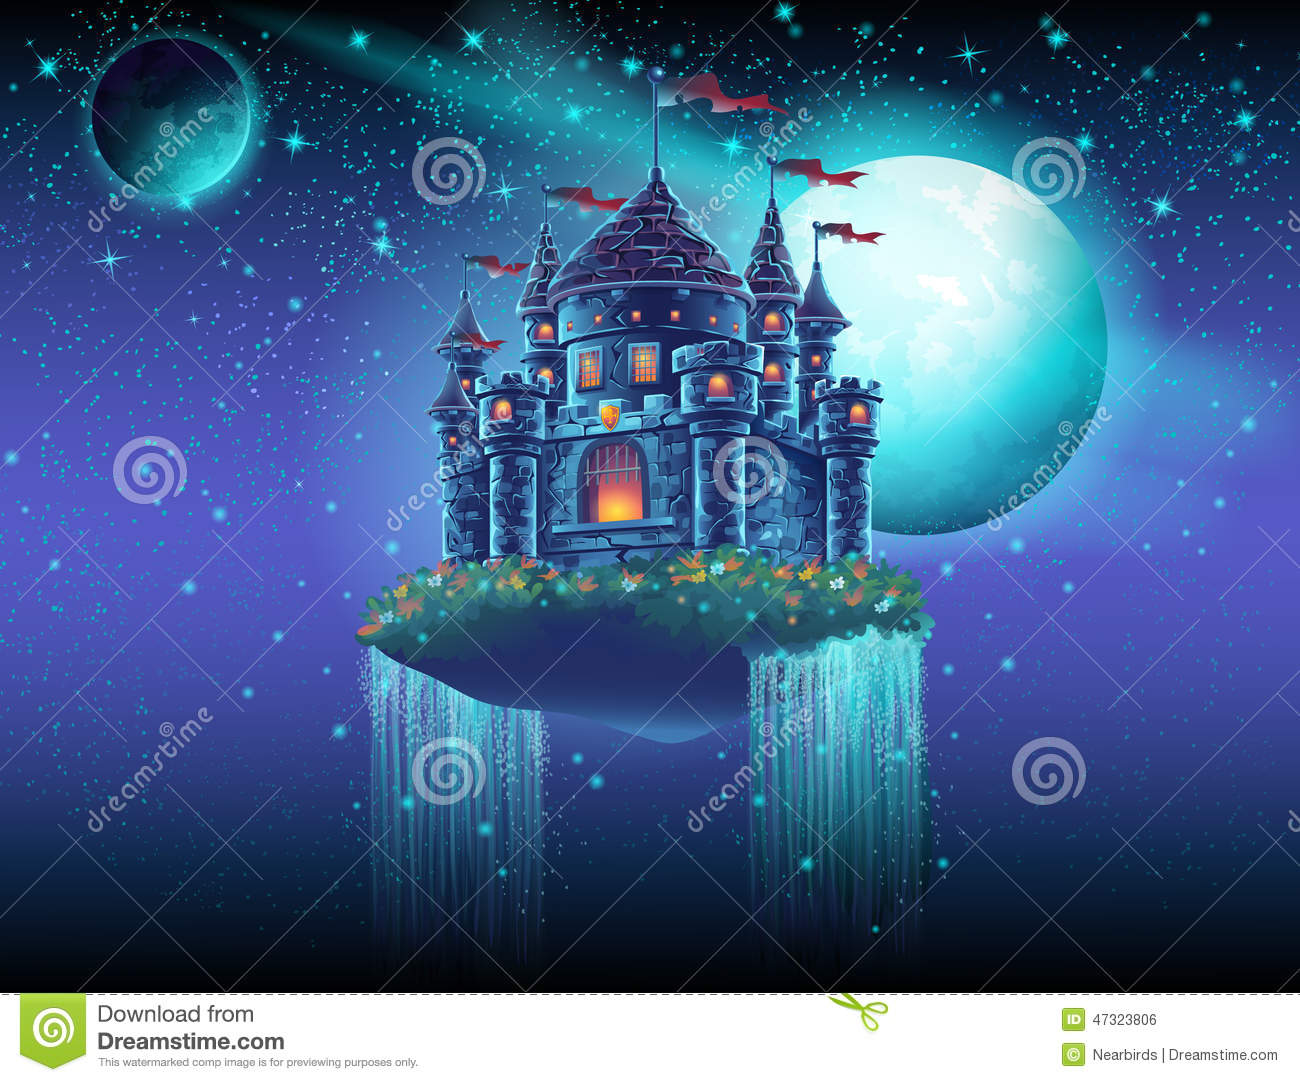 Illustration Of A Flying Castle Space With Waterfalls On The Background Stars And Planets